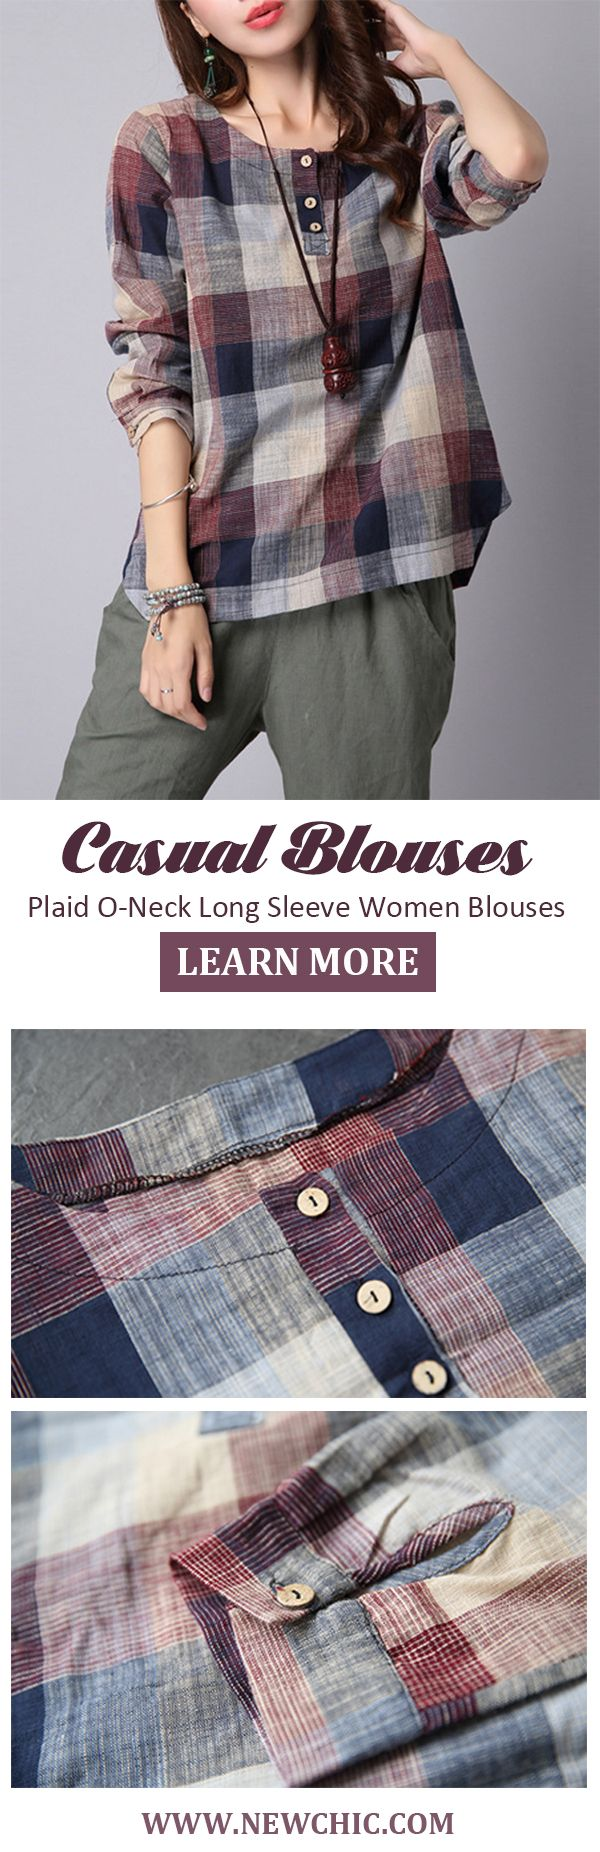 [Newchic Online Shopping] 48%OFF Women's Casual Plaid Blouses with Long Sleeve and O-Neck